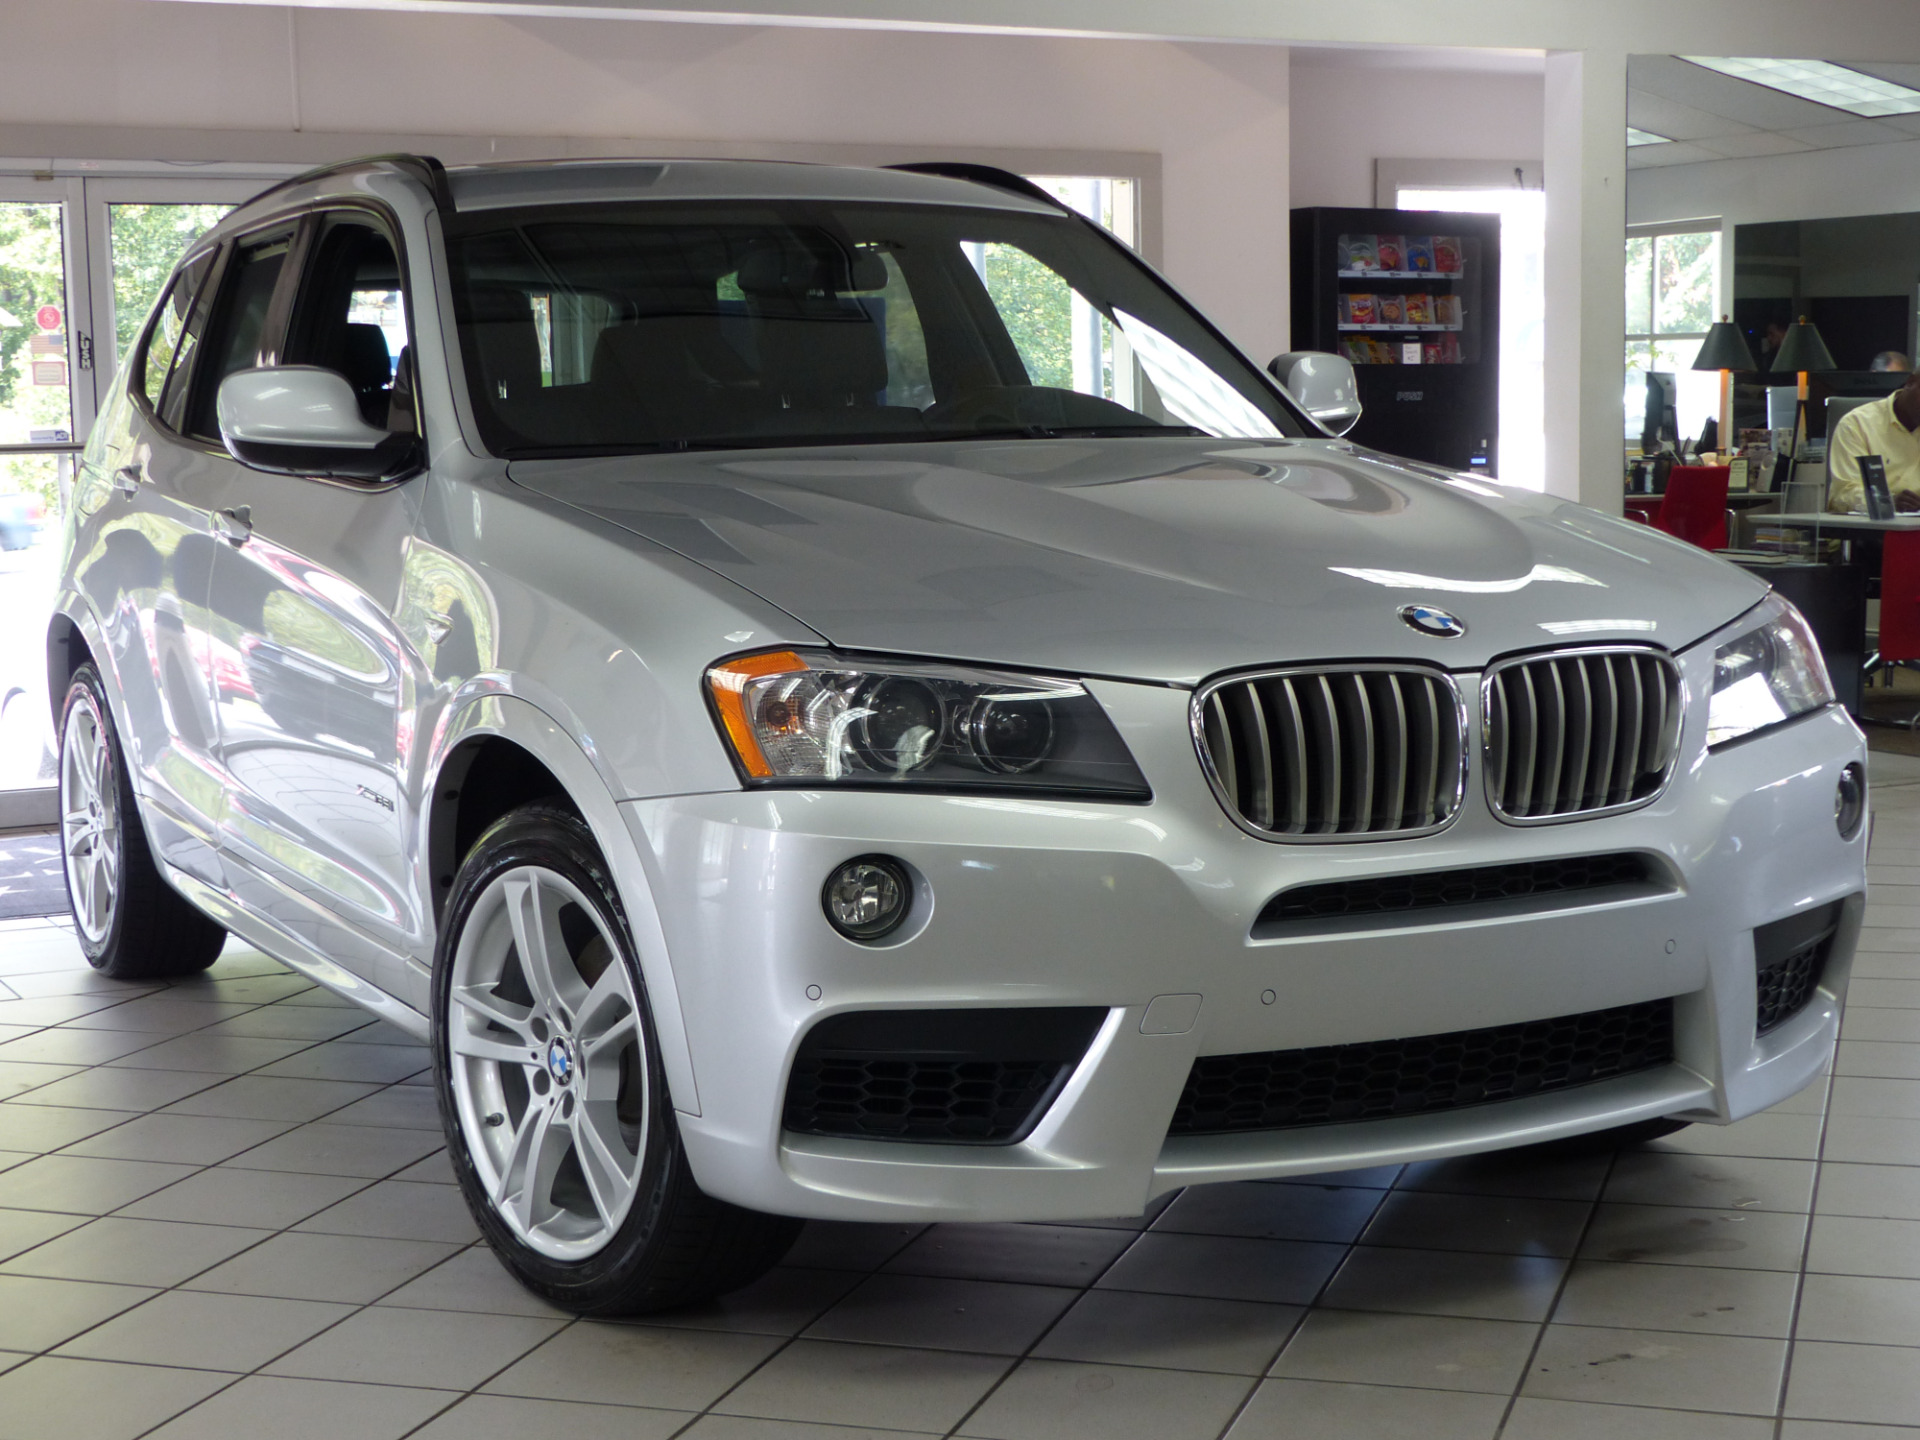 used 2013 bmw x3 xdrive35i marietta ga. Black Bedroom Furniture Sets. Home Design Ideas